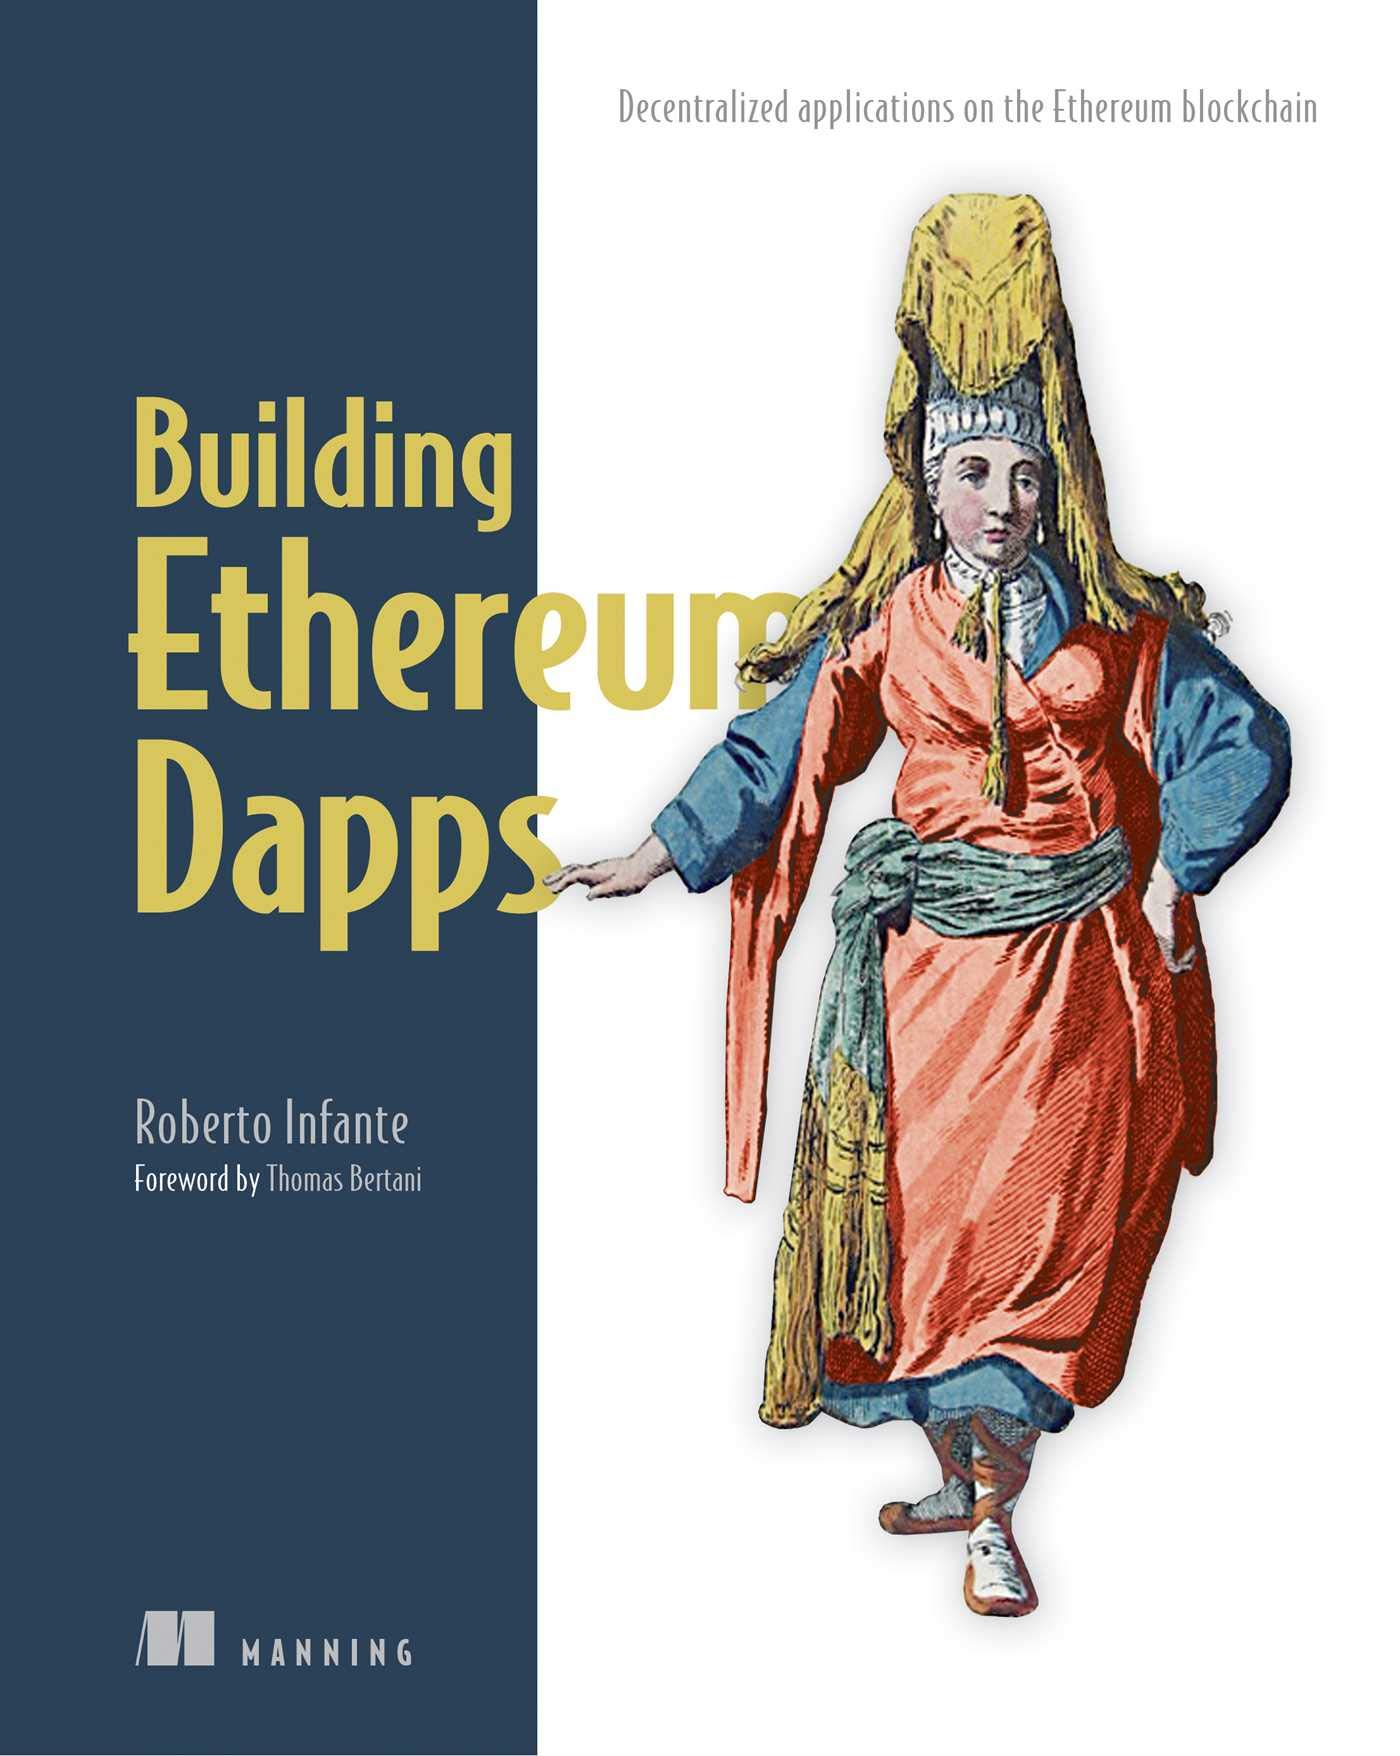 Image OfBuilding Ethereum Dapps: Decentralized Applications On The Ethereum Blockchain